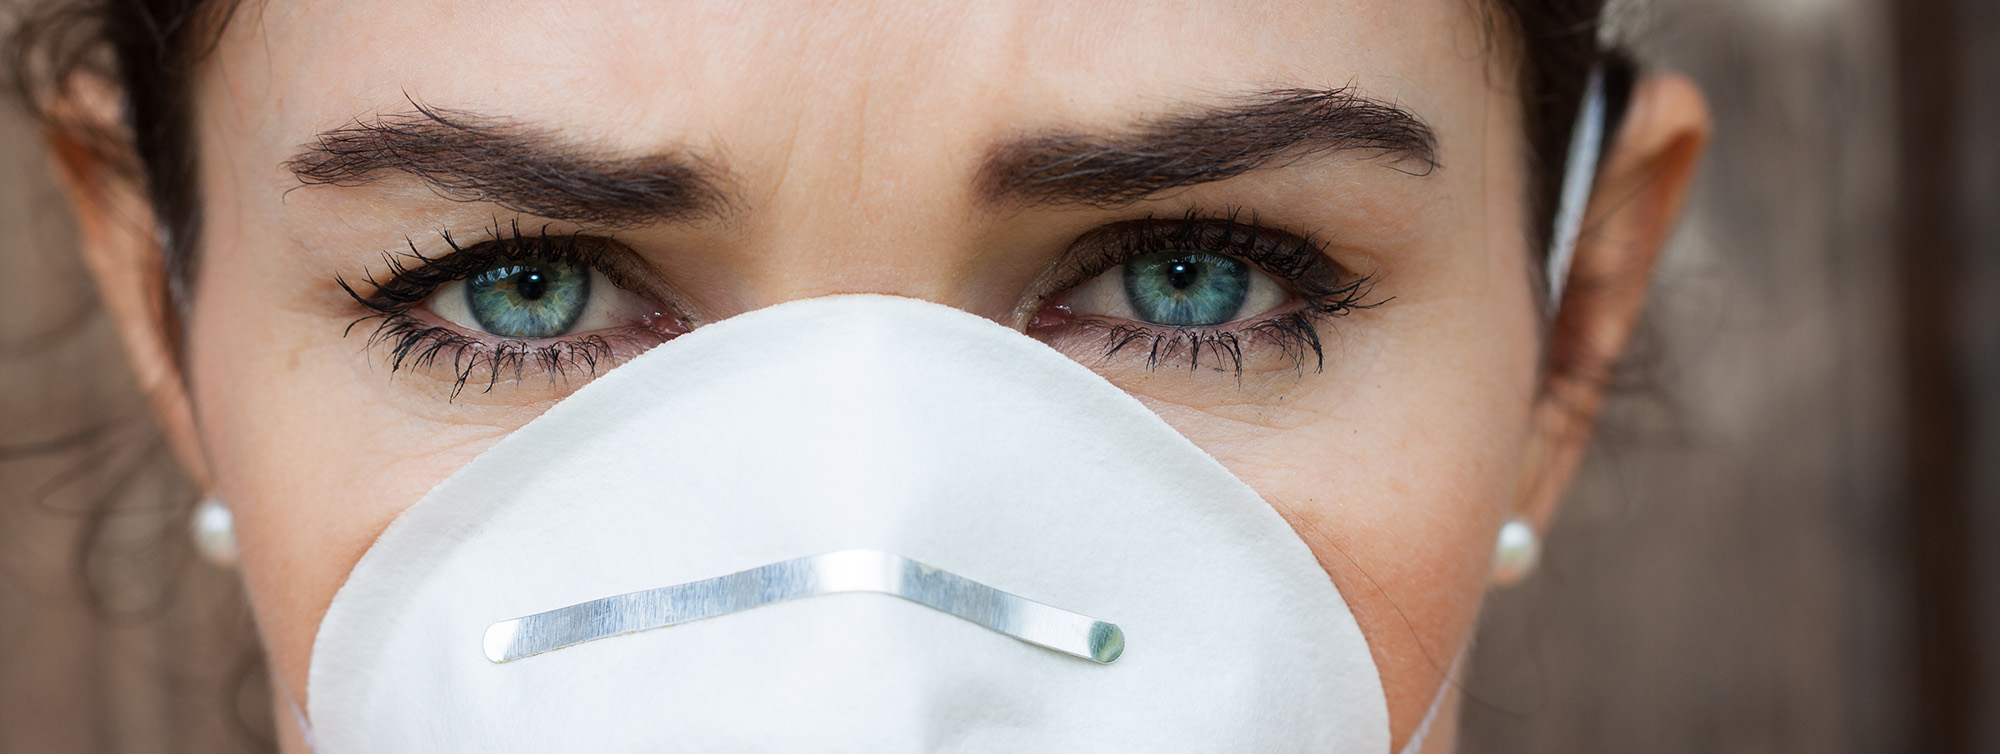 Can Face Masks Help With Allergies And Pollen